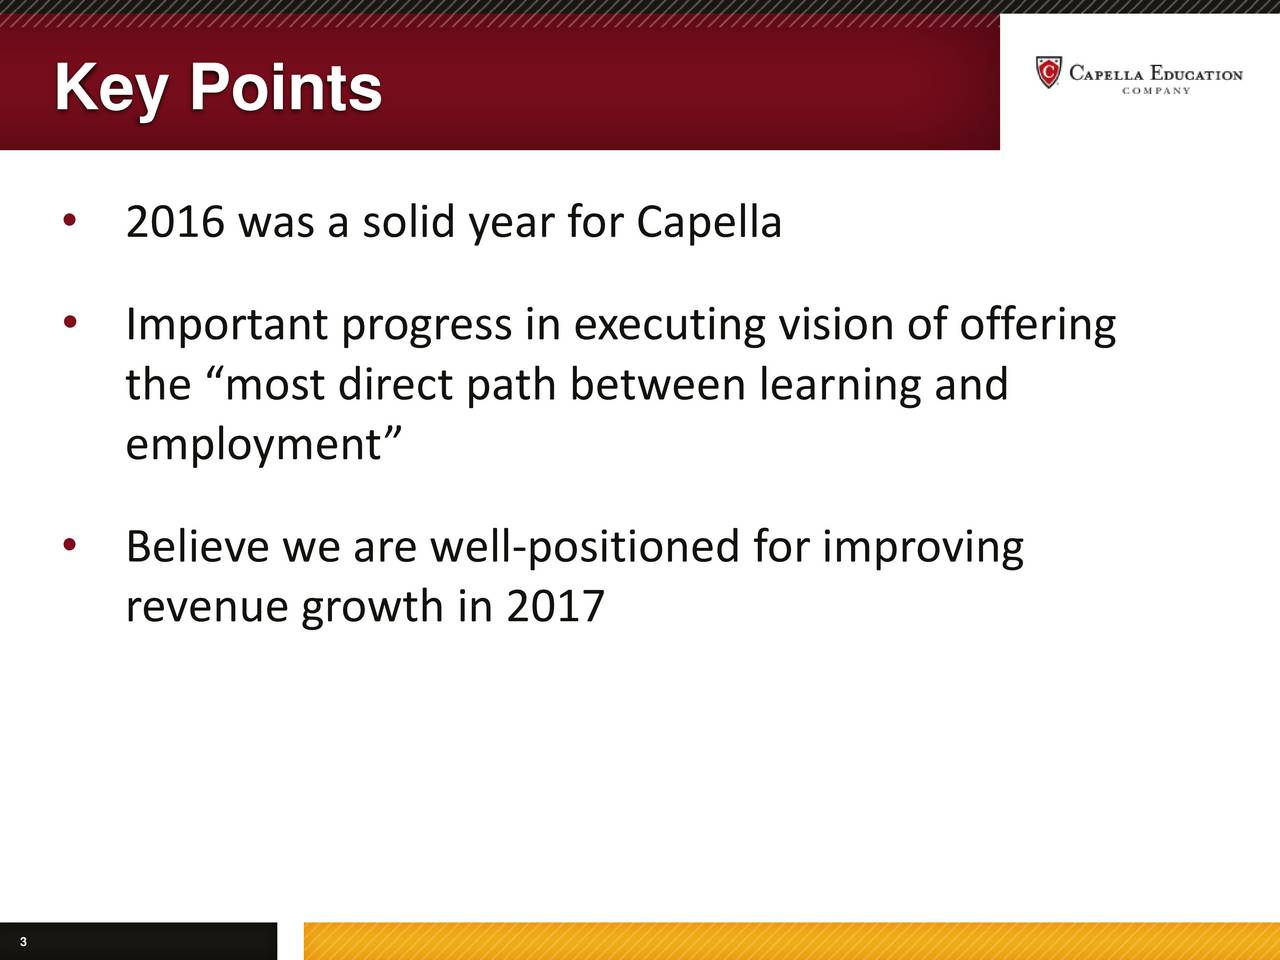 2016 was a solid year for Capella Important progress in executing vision of offering the most direct path between learning and employment Believe we are well-positioned for improving revenue growth in 2017